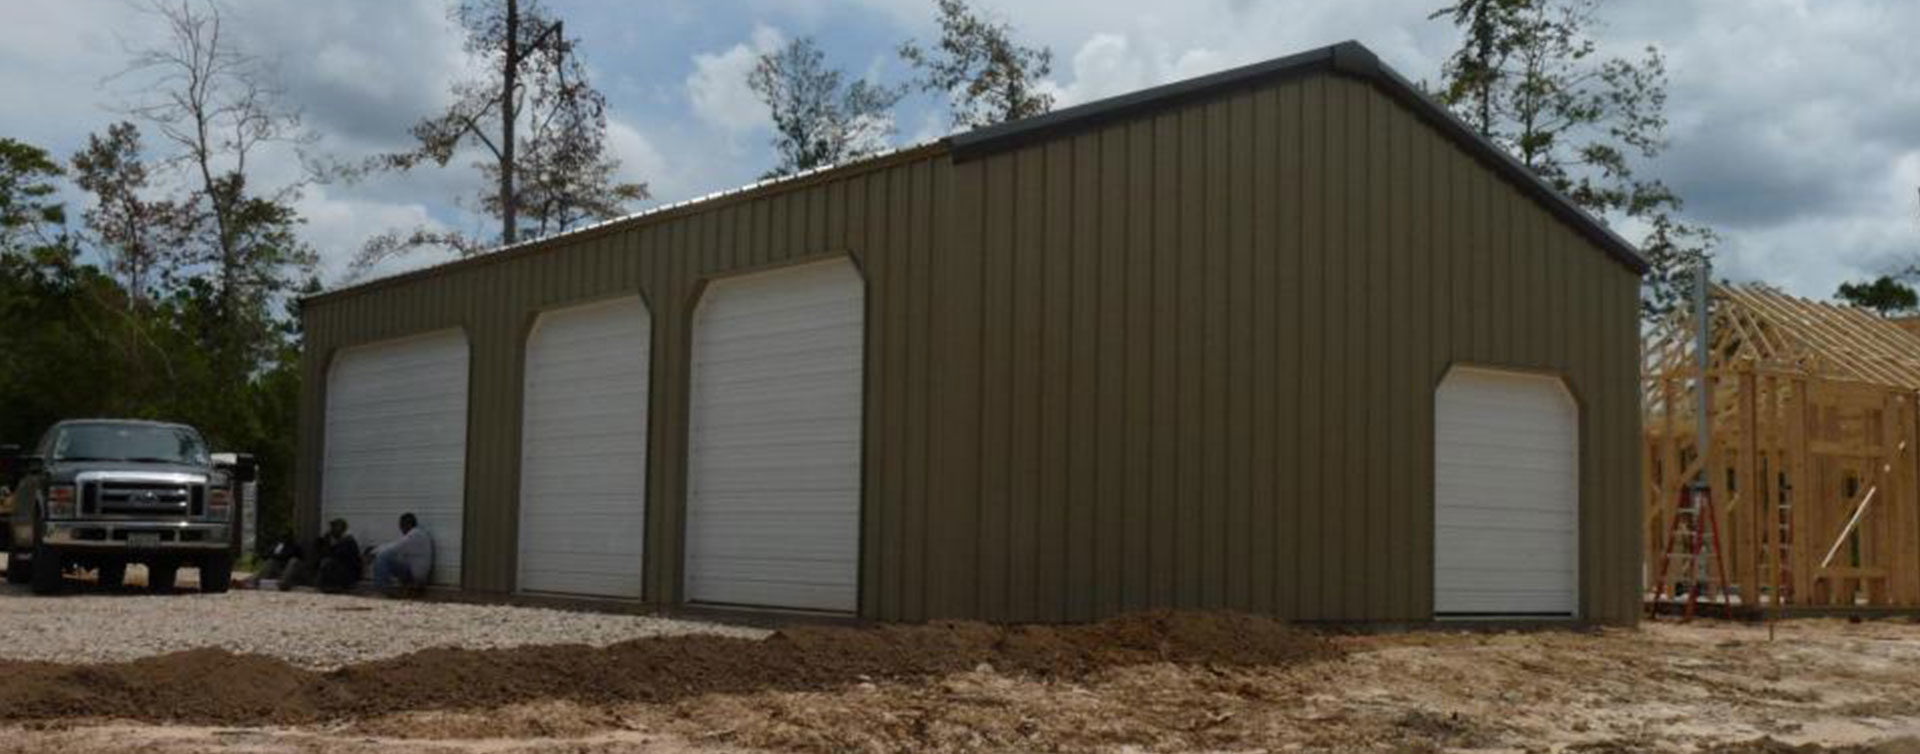 wood frame steel buildings